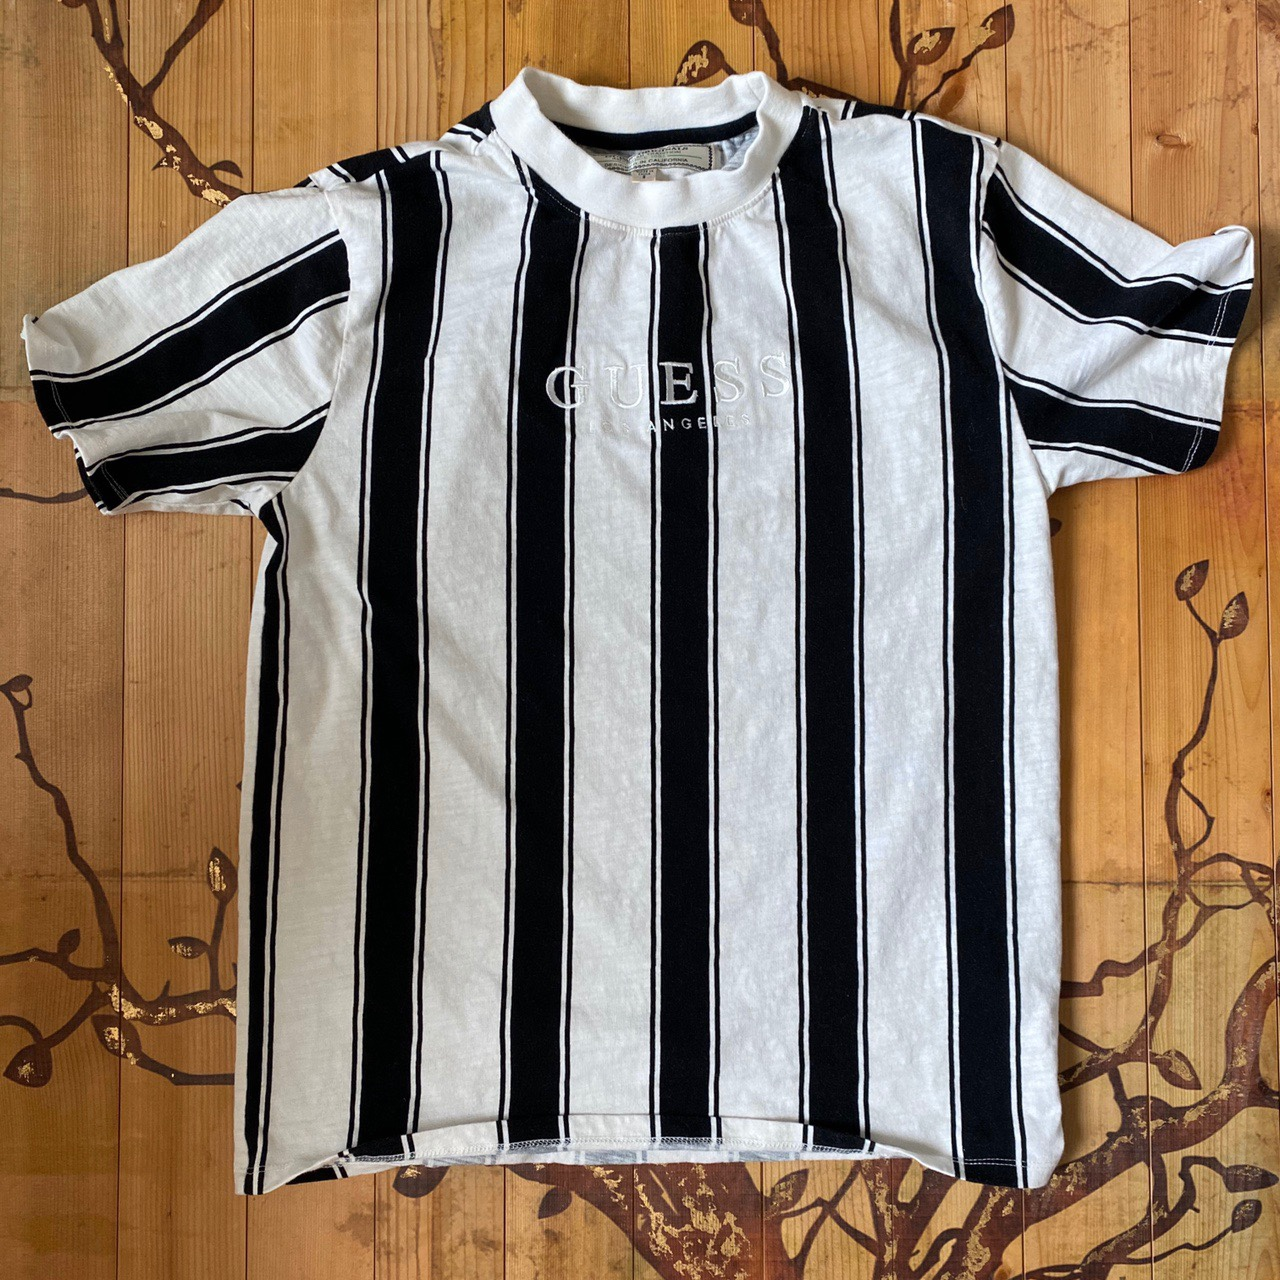 Product Image 1 - Guess striped shirt vintage  Basically